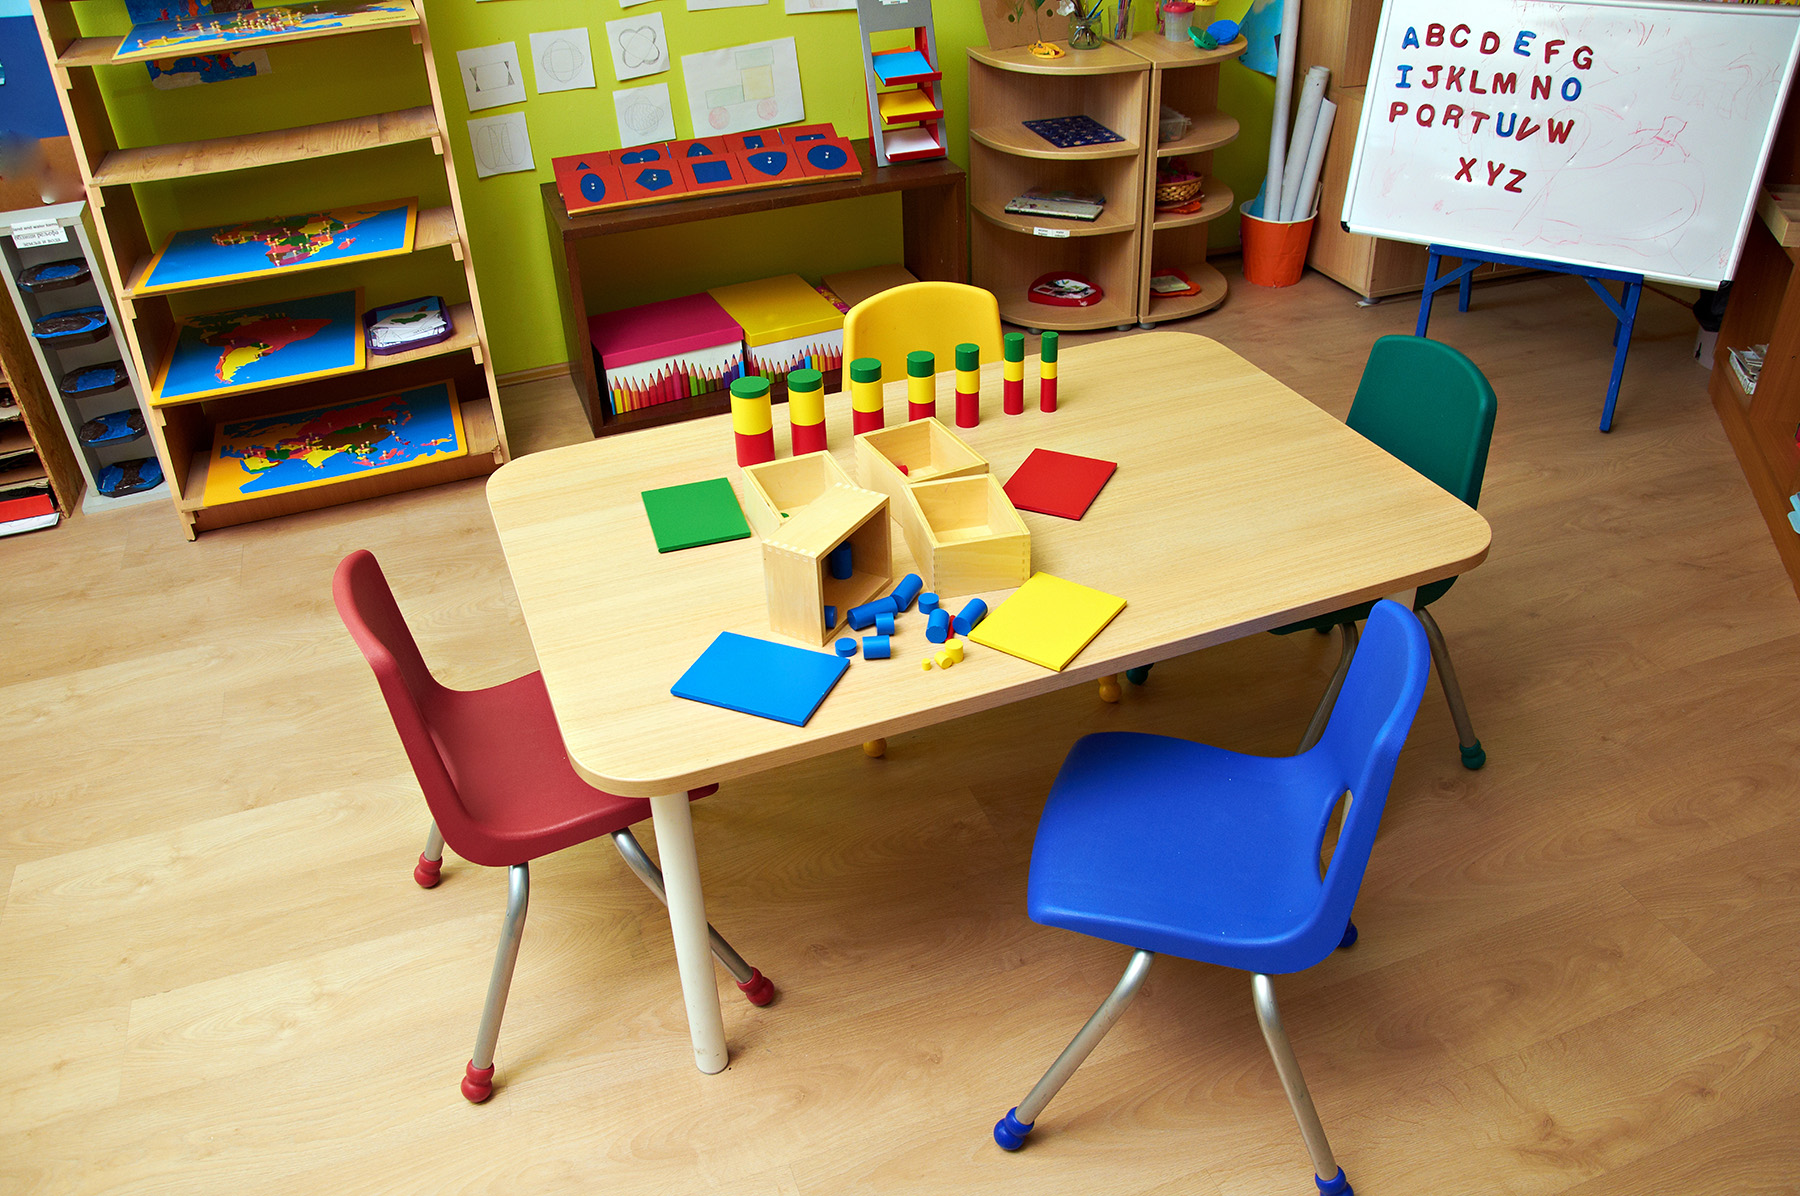 Children 's toy room tables and chairs 51552